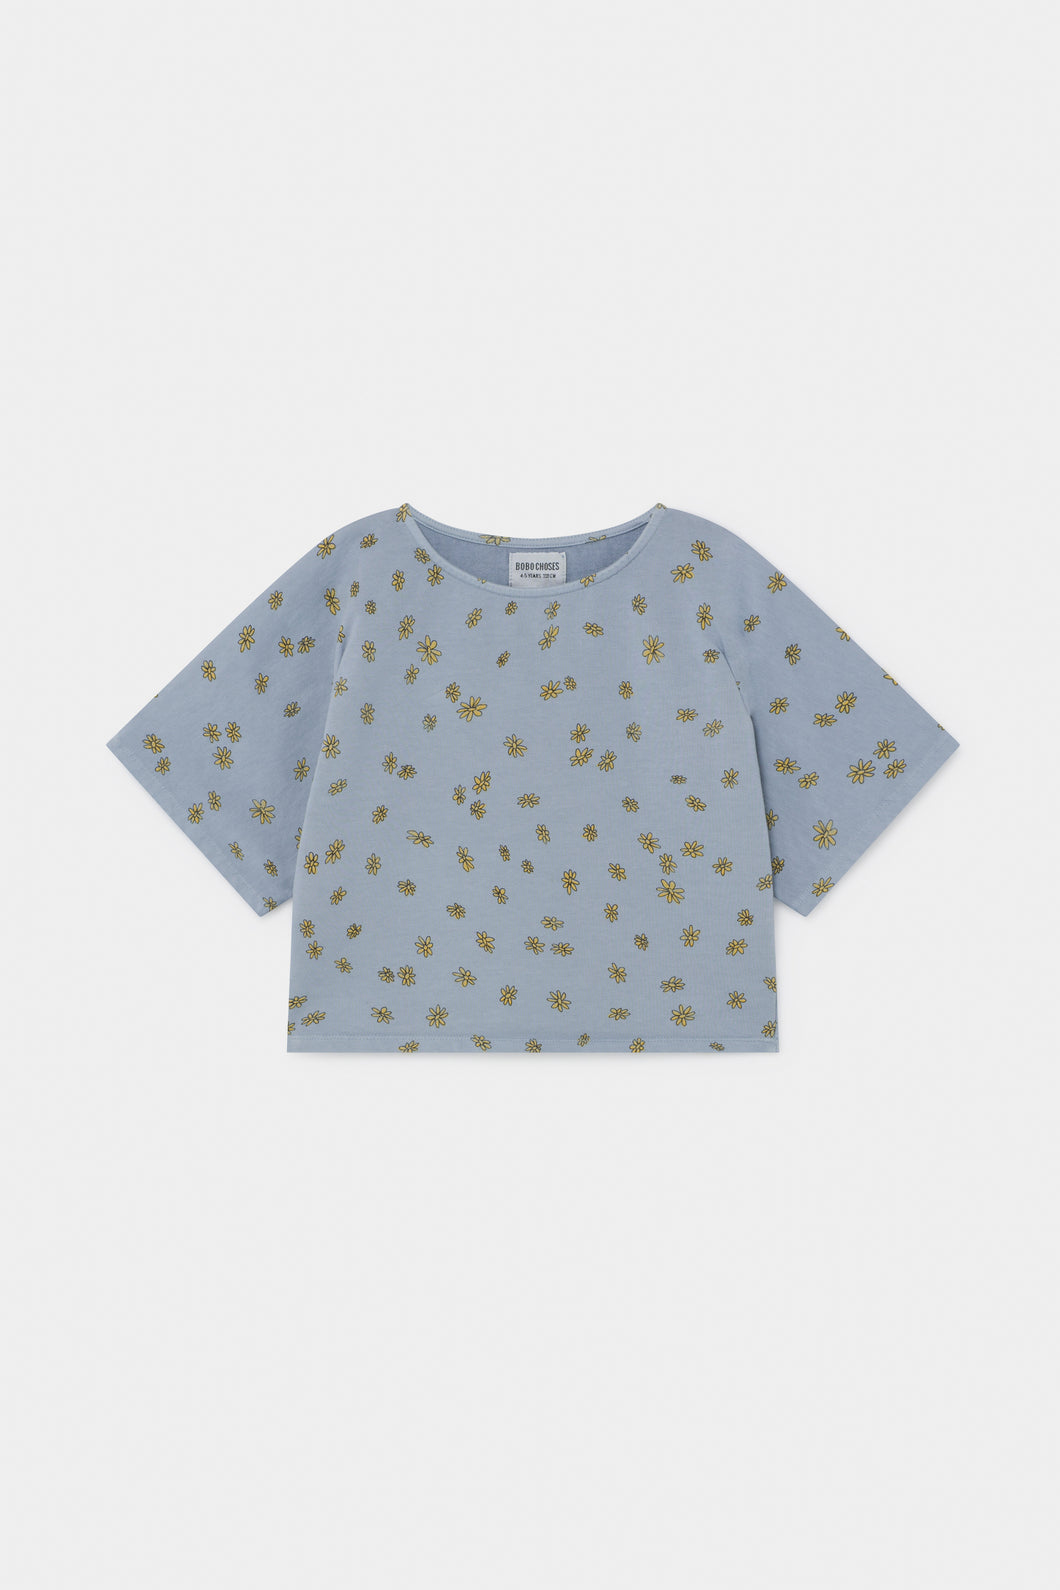 All Over Daisy Cropped Sweatshirt (LAST ONE 8/9y)